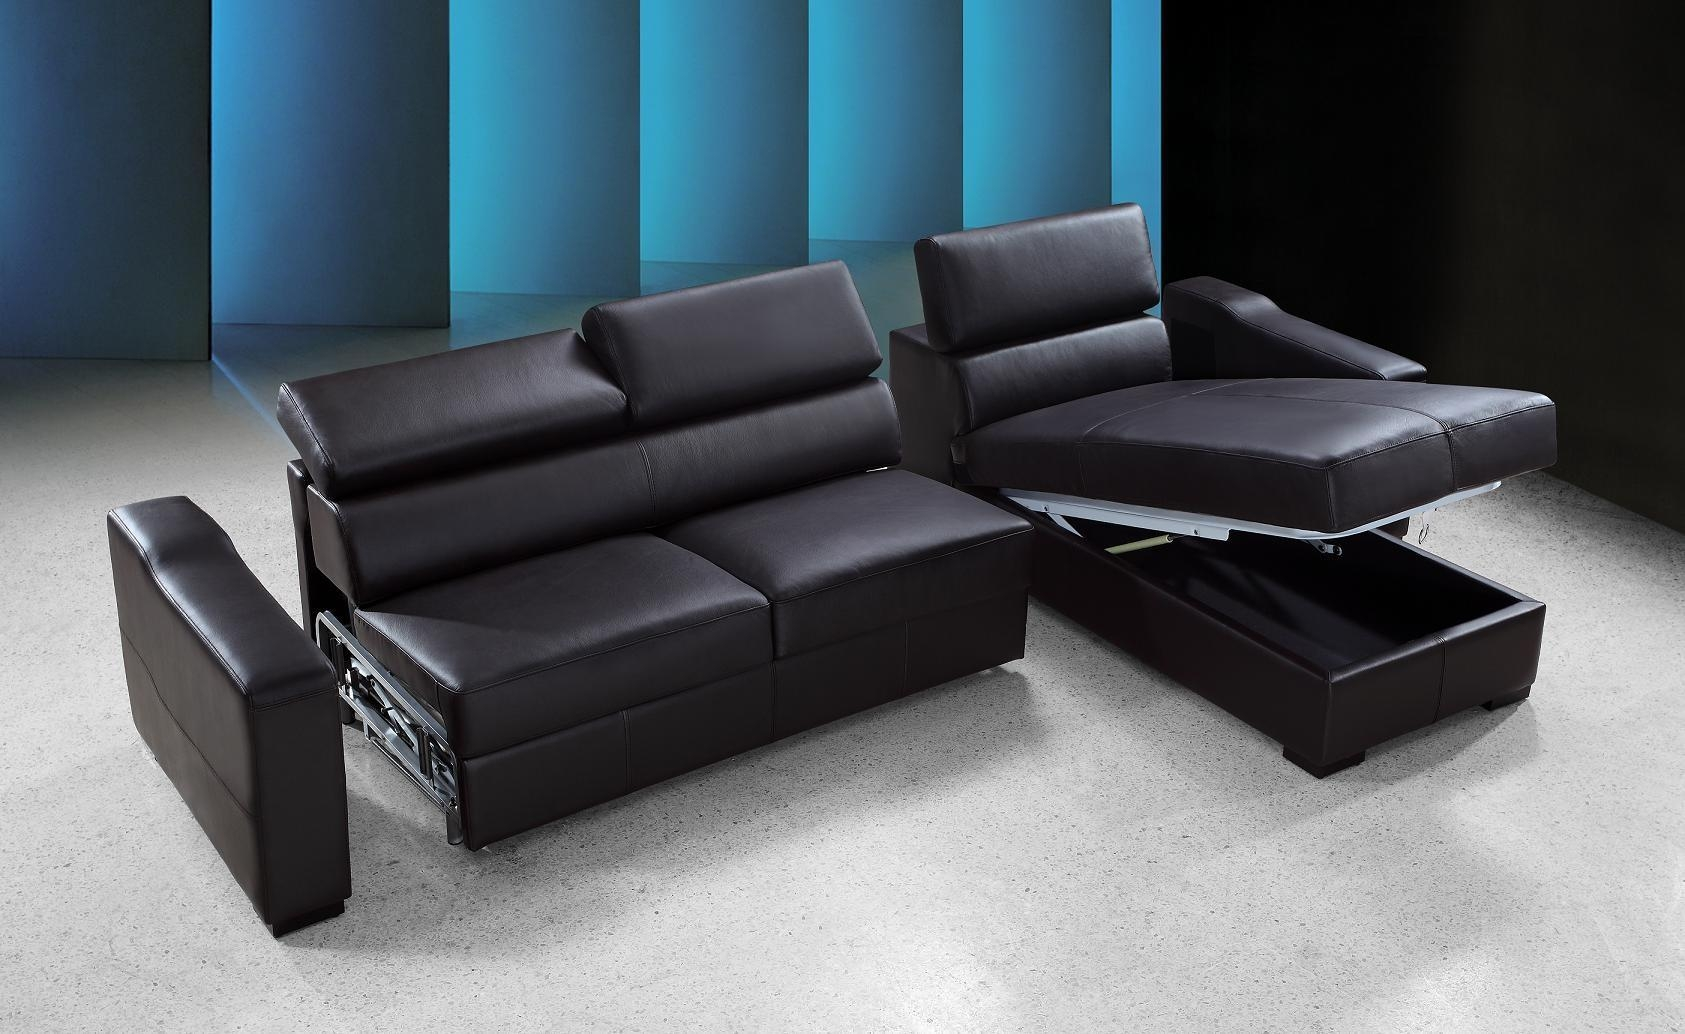 Modern Leather Couches Toronto. Great Modern Furniture Toronto With Regard To Leather Sectional Sofas Toronto (Photo 12 of 20)